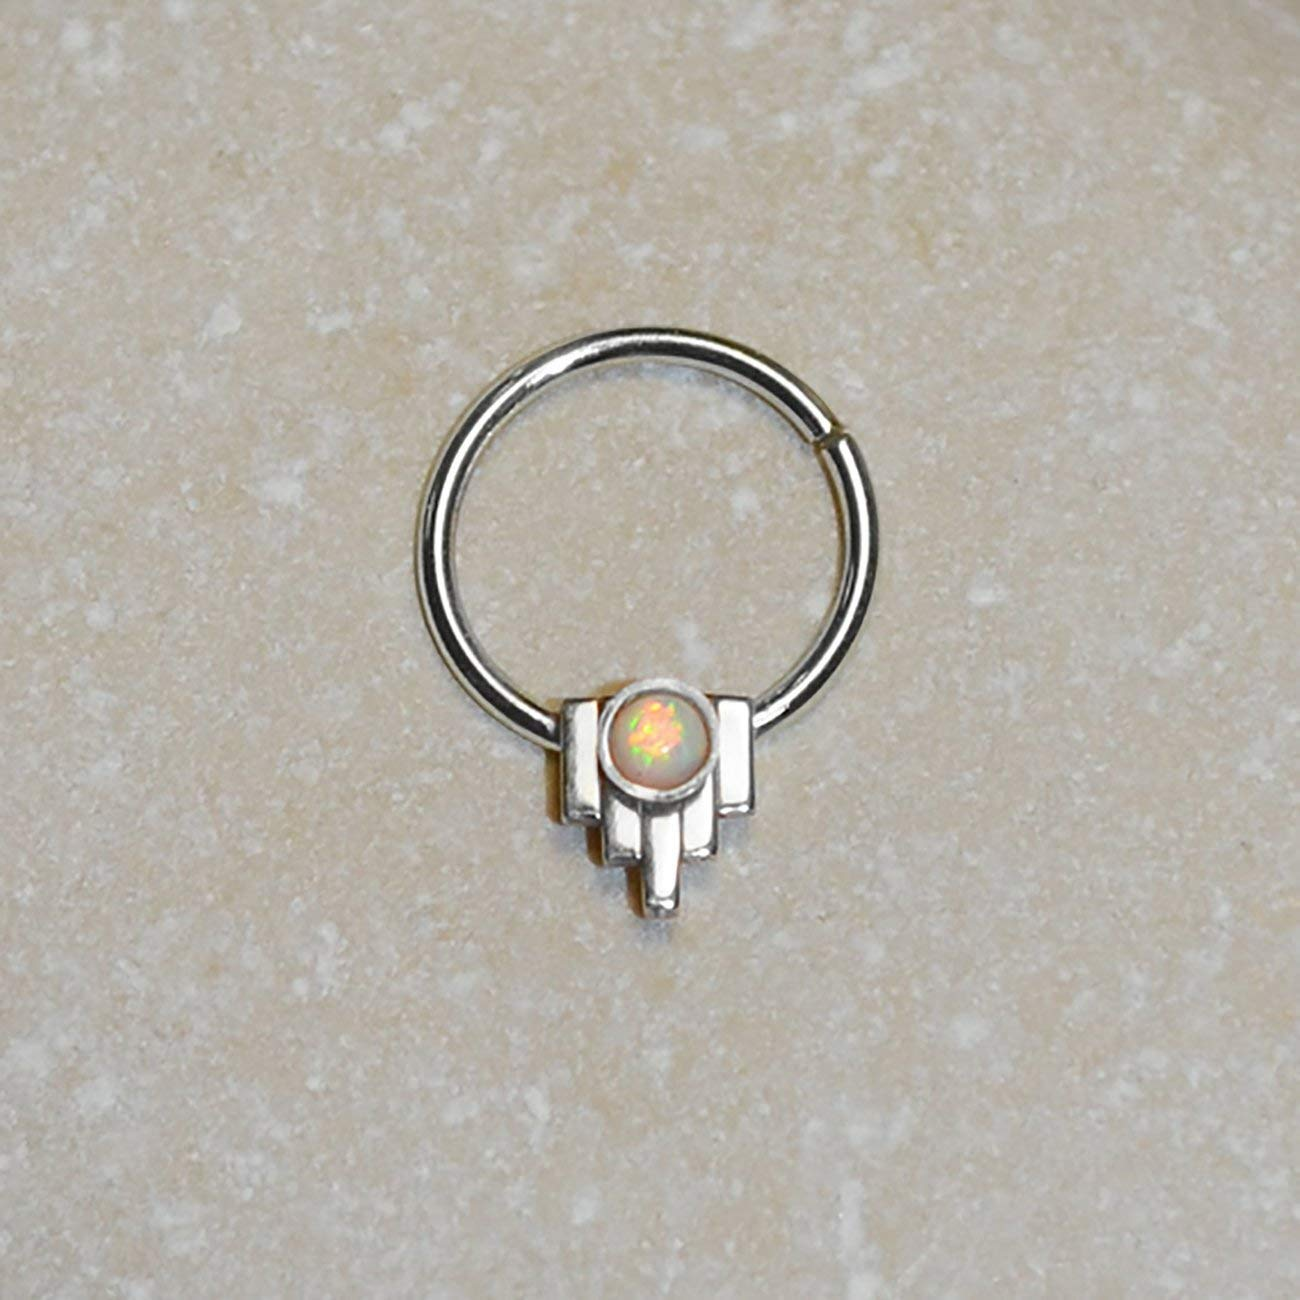 Silver NIPPLE RING Opal // Septum Jewelry 16g - Daith Earring - Opal Septum Ring - Body Piercing - Nipple Piercing 16 gauge